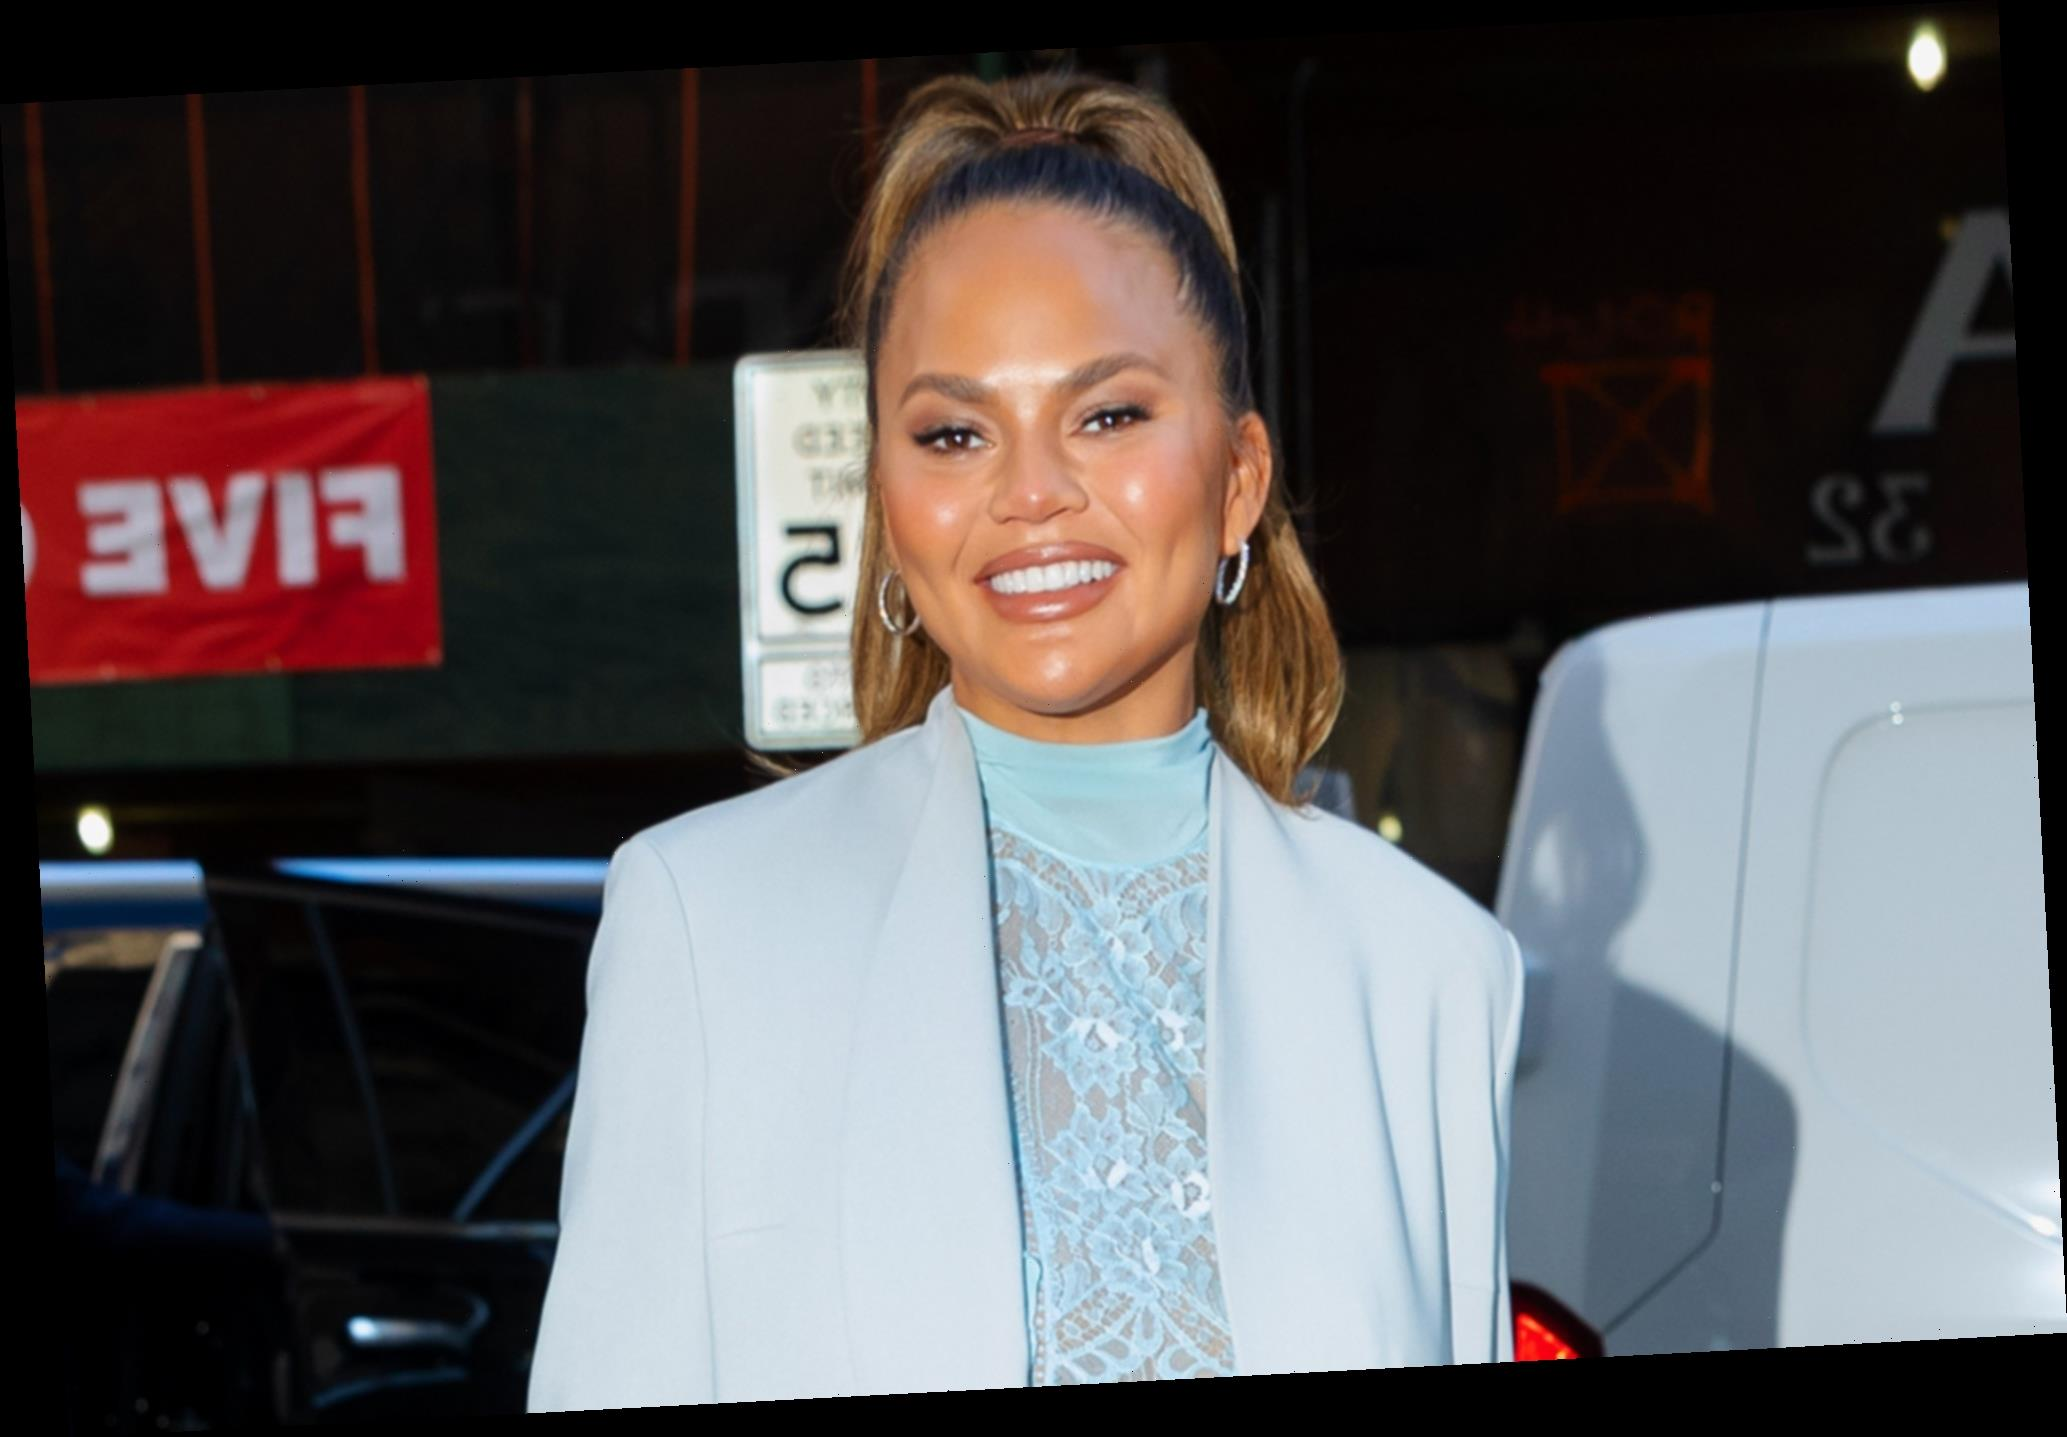 Chrissy Teigen reveals she had a boob job at the beginning of her career